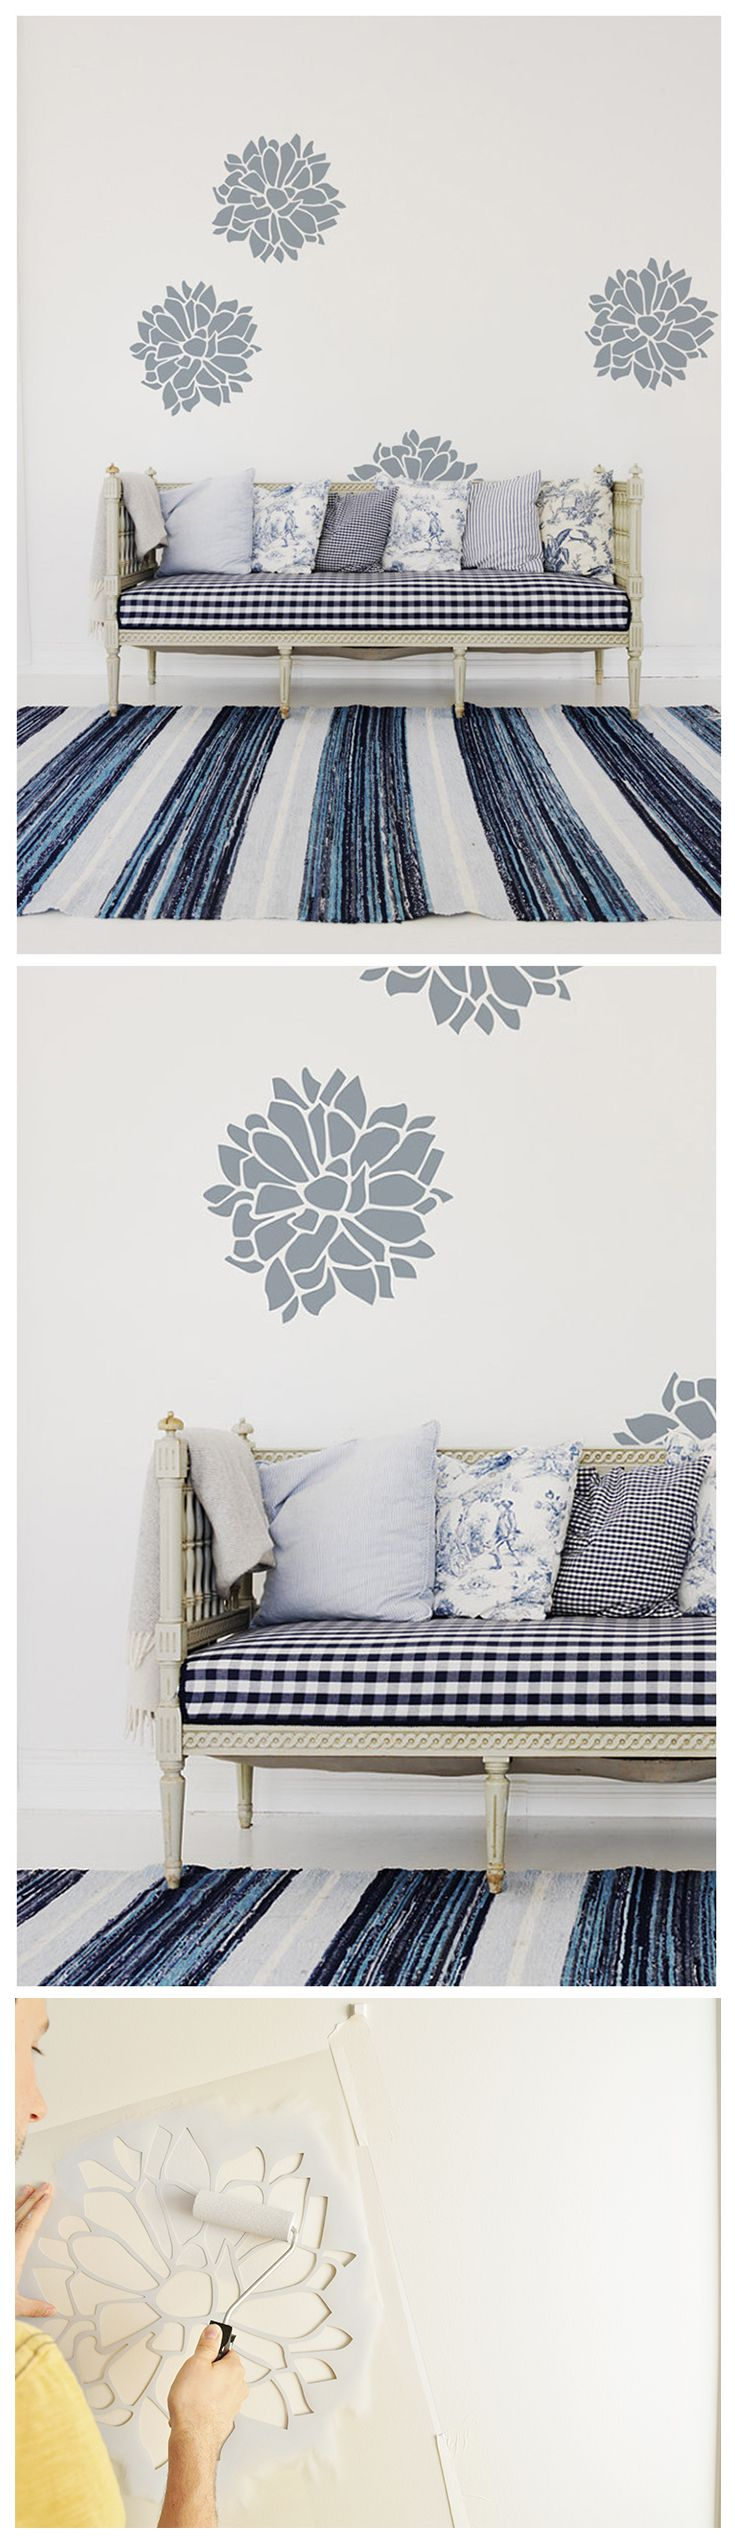 Floral stencil, Chrysanthemum wall stencil for wall decor.